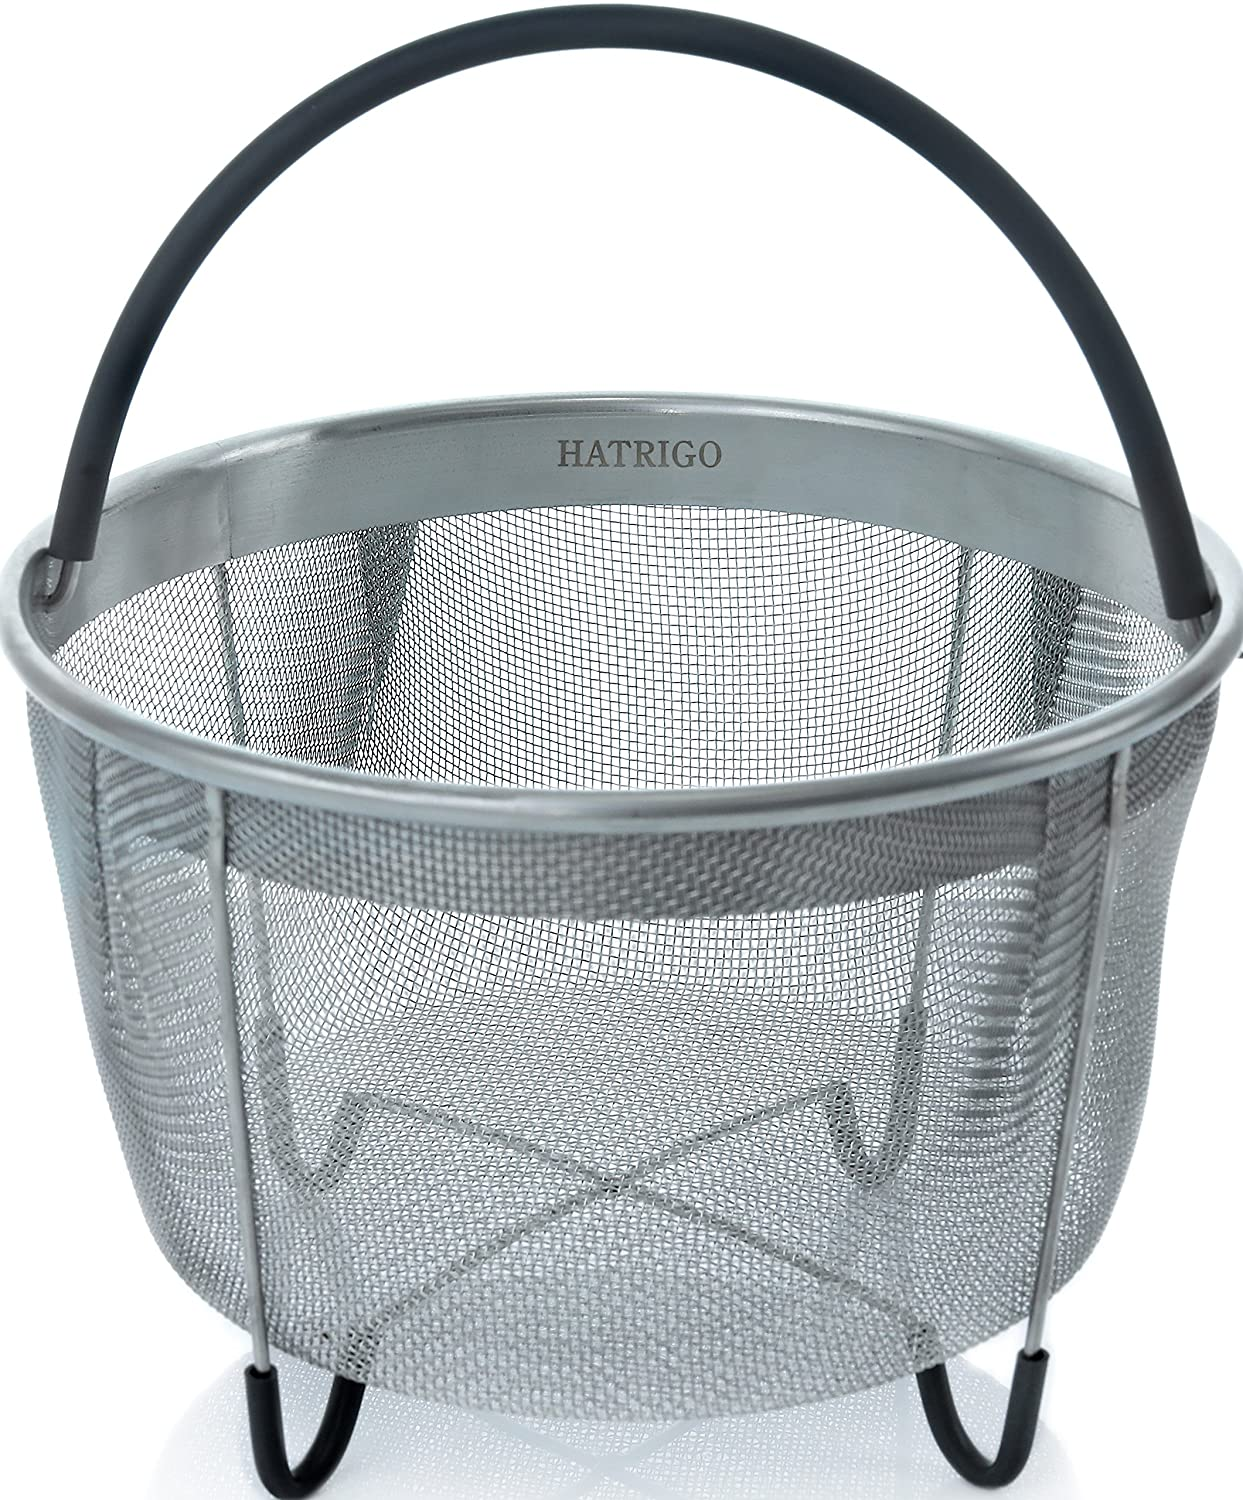 Hatrigo Instant Pot Steamer Basket